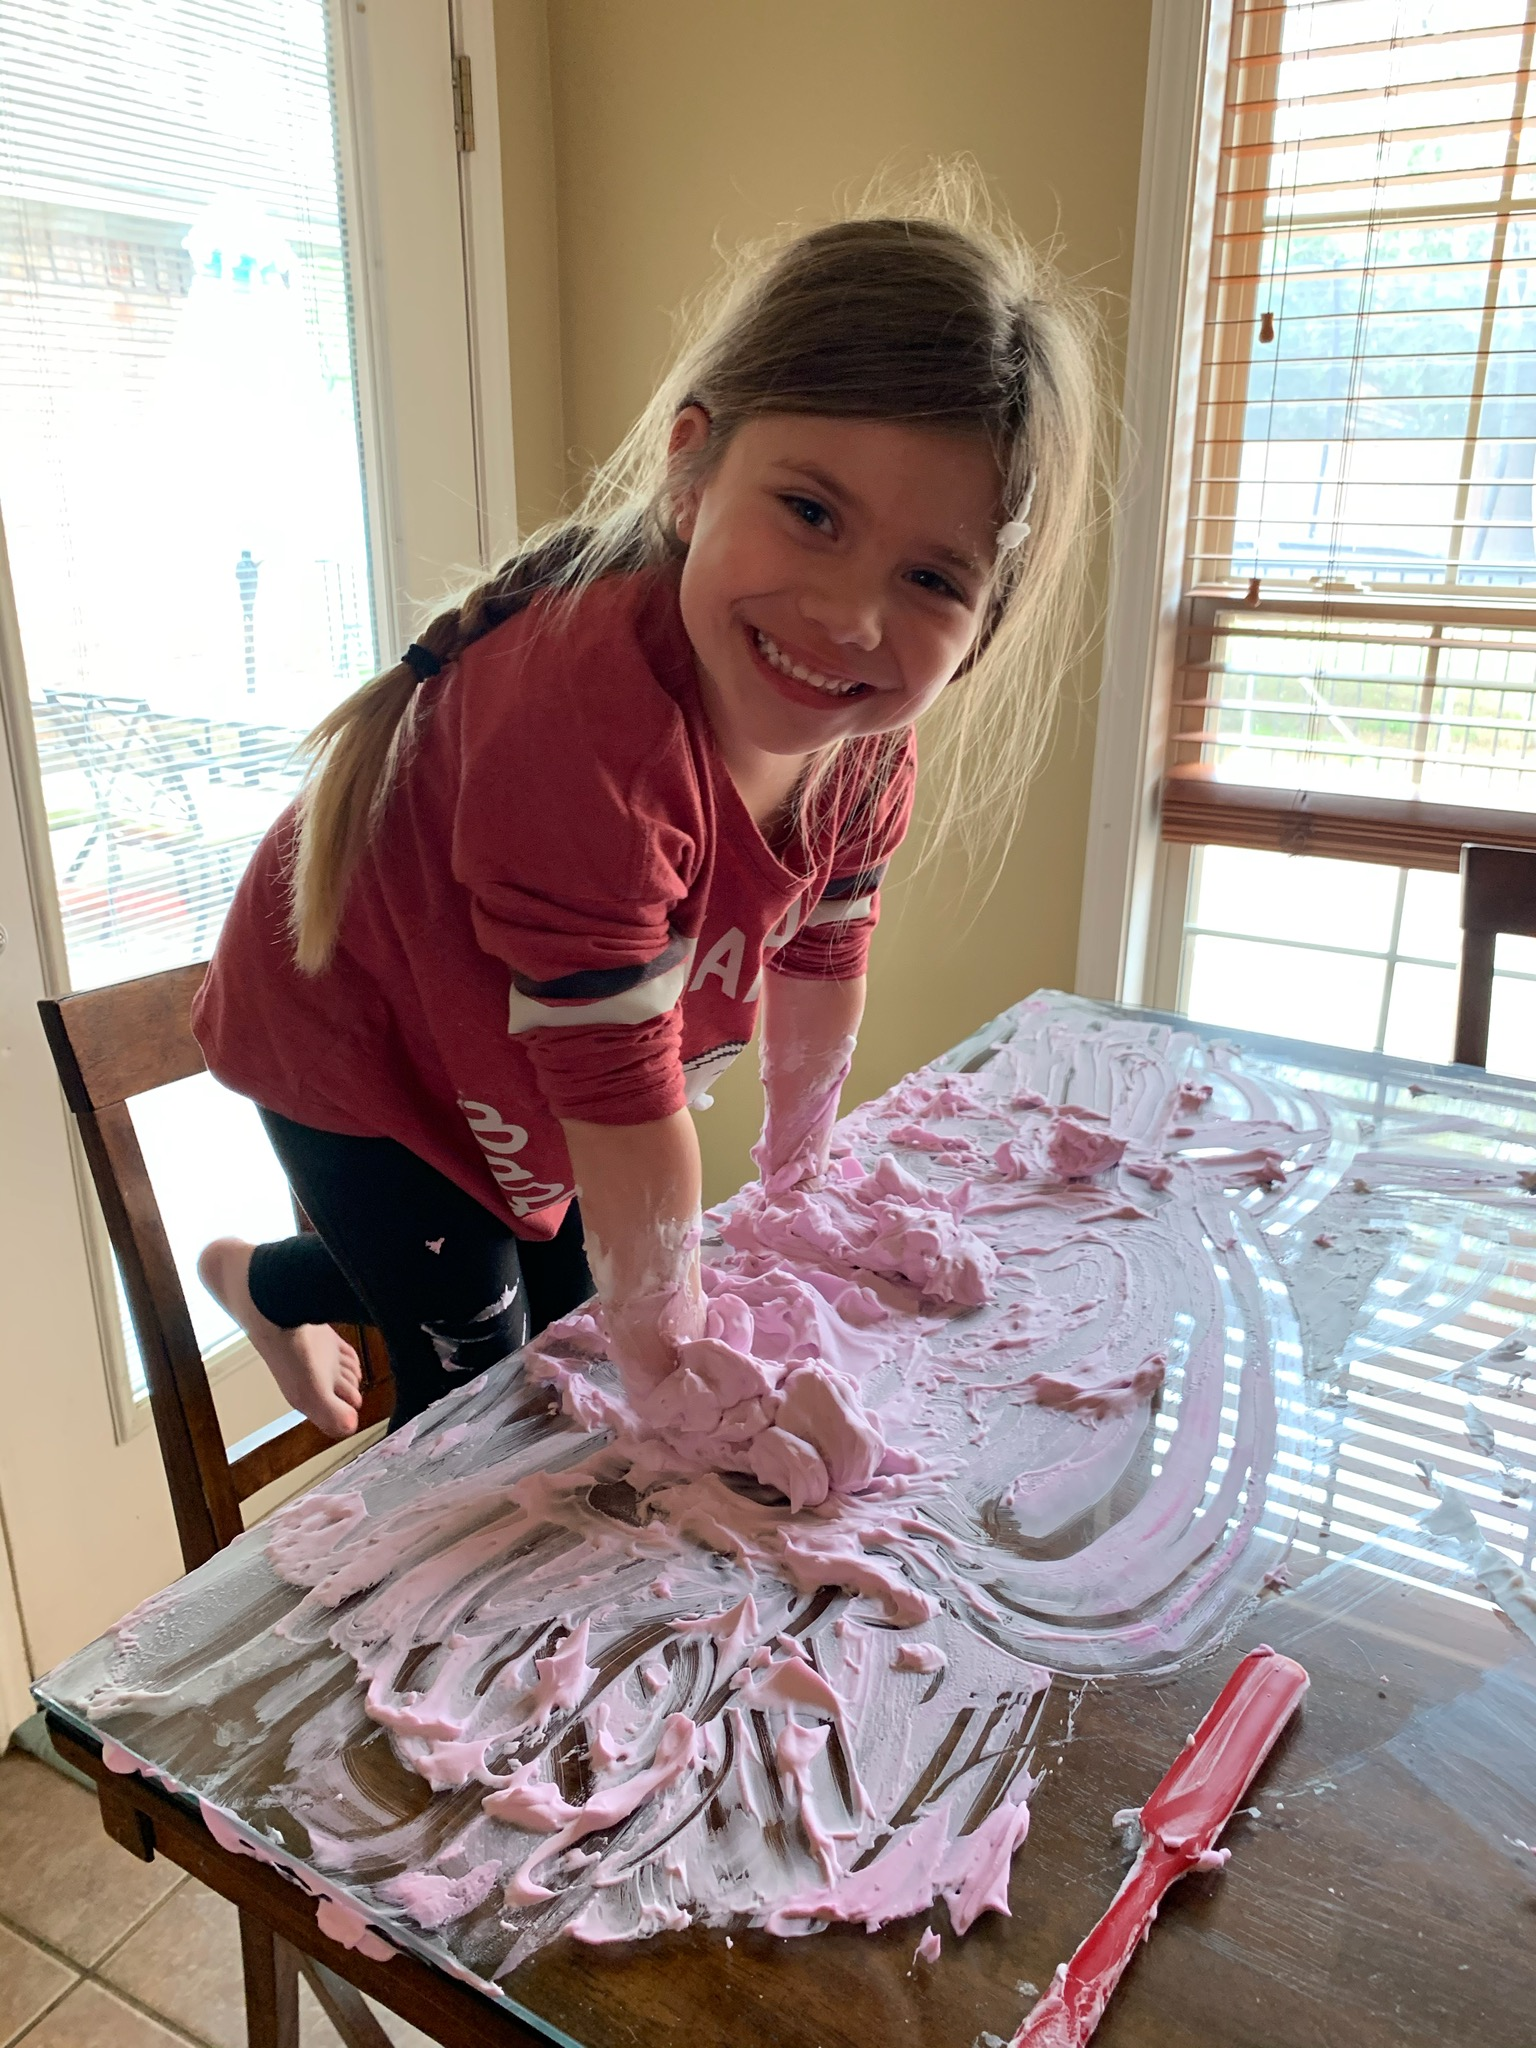 Here is a fun sensory (and writing!) preschool activity - you might have the materials on hand: Spread a little shaving cream on the table, and encourage writing letters, a name, or just drawing. This one has it all: it cleans the table and smells great as bonuses! Supervision needed.